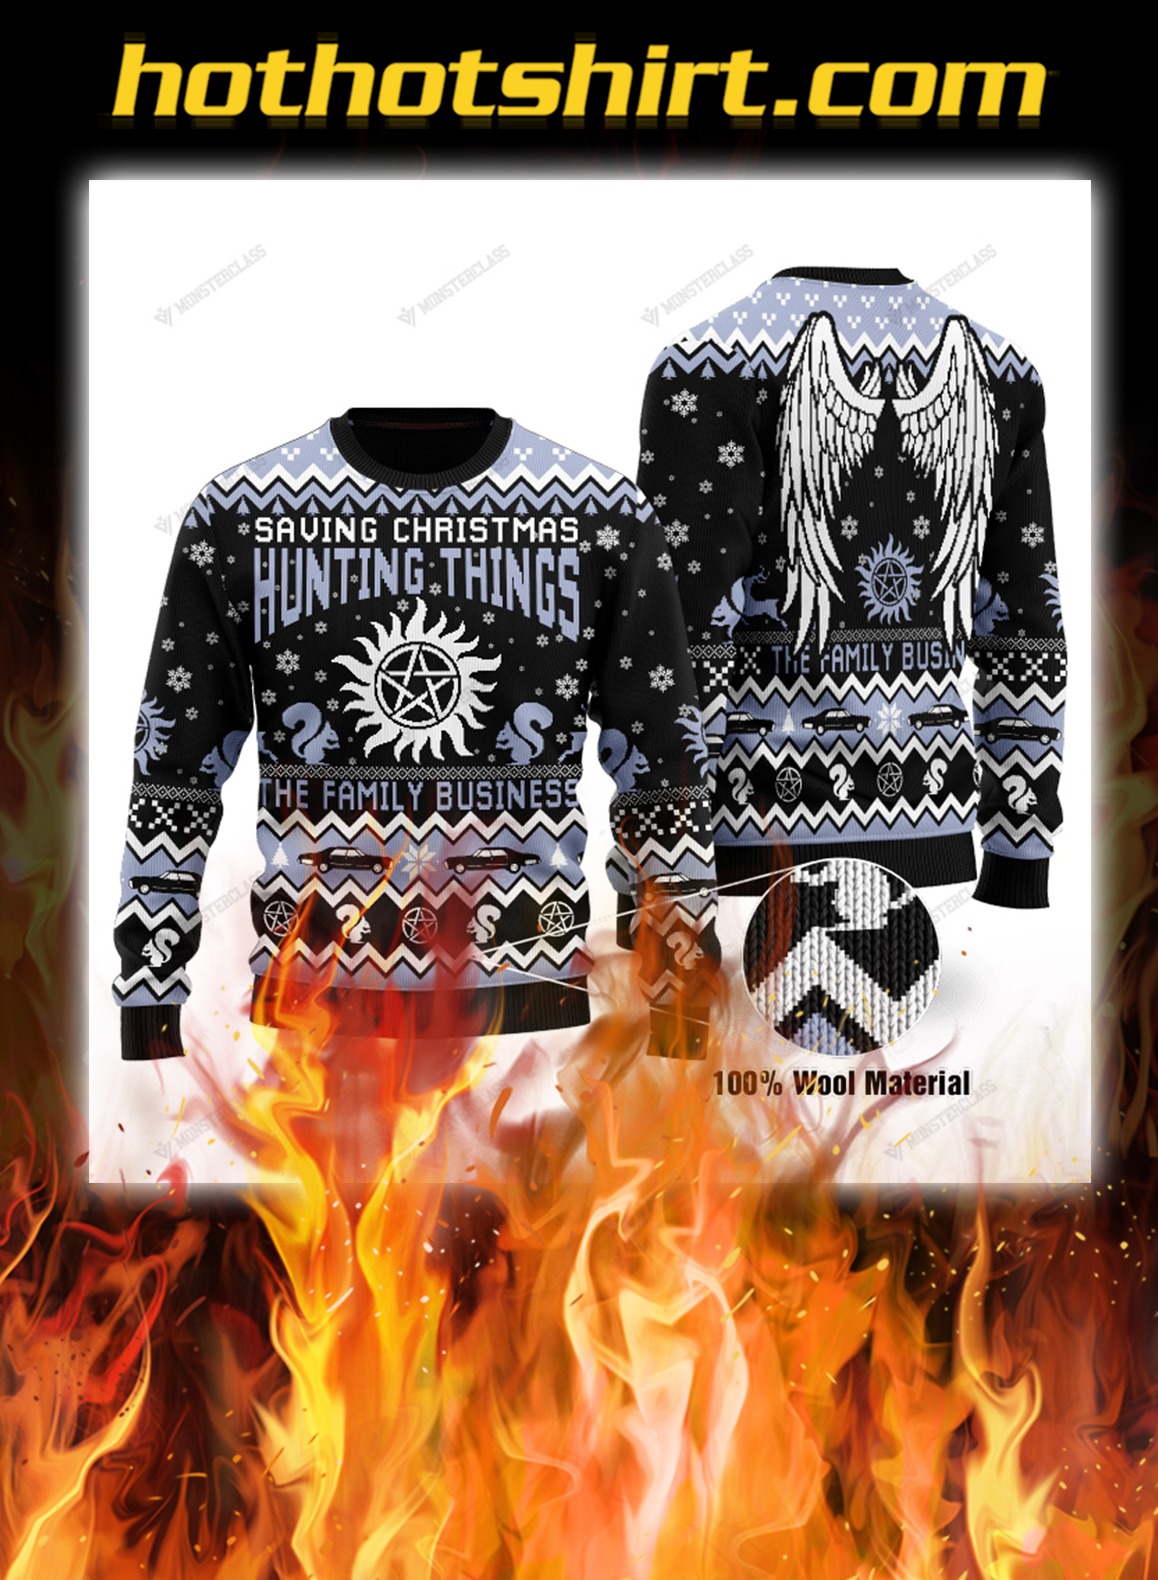 Saving christmas hunting things the family business ugly sweater- pic 1